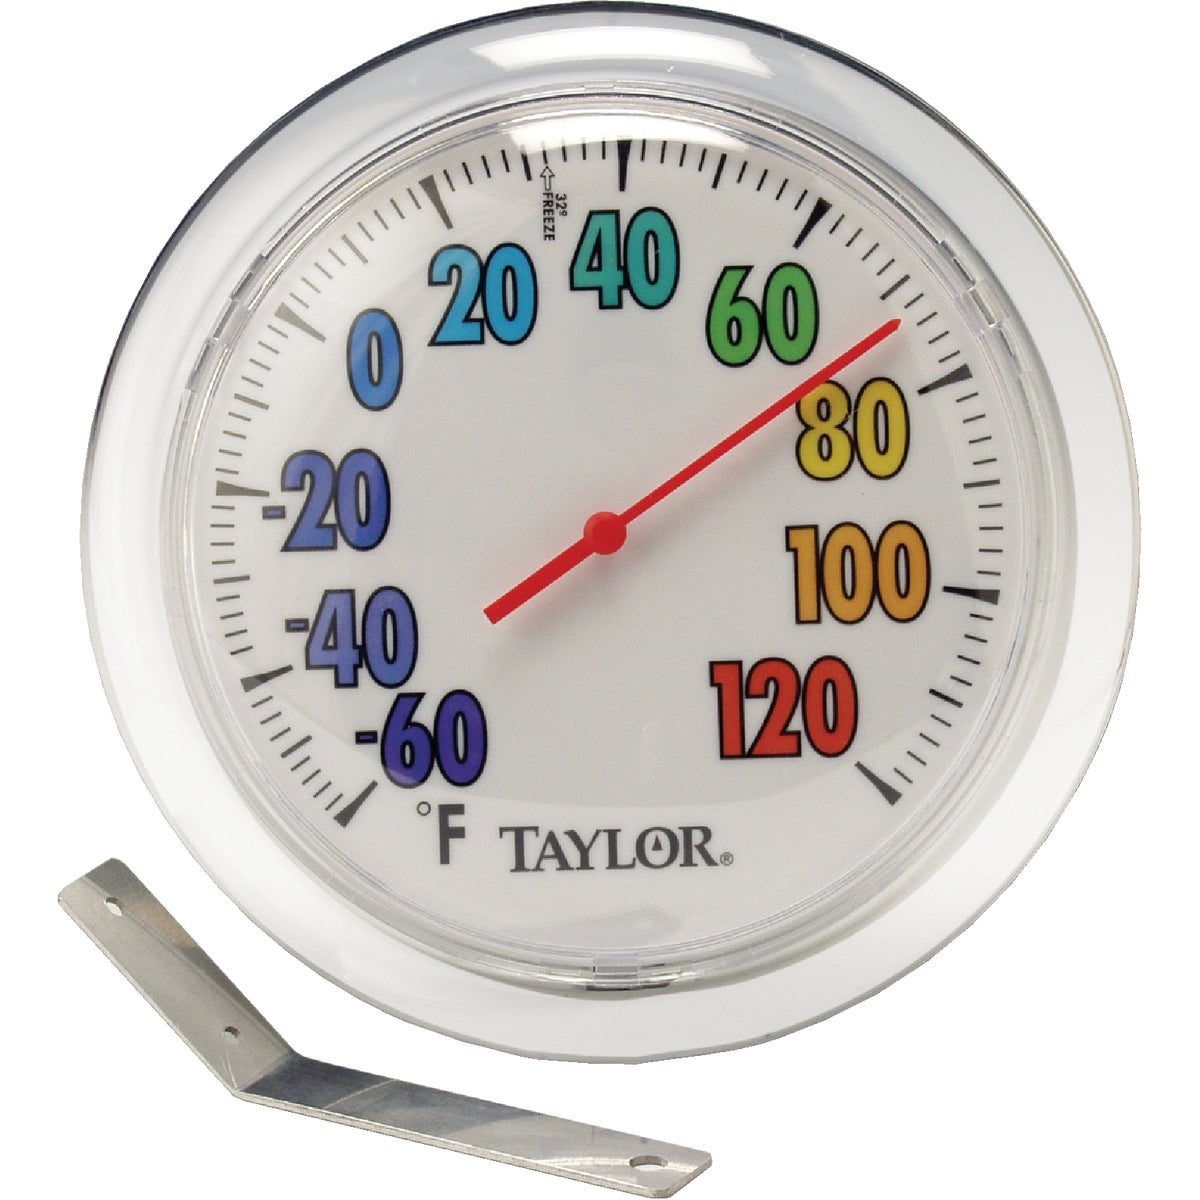 OUTDOOR THERMOMETER - 5631 by Taylor Precision